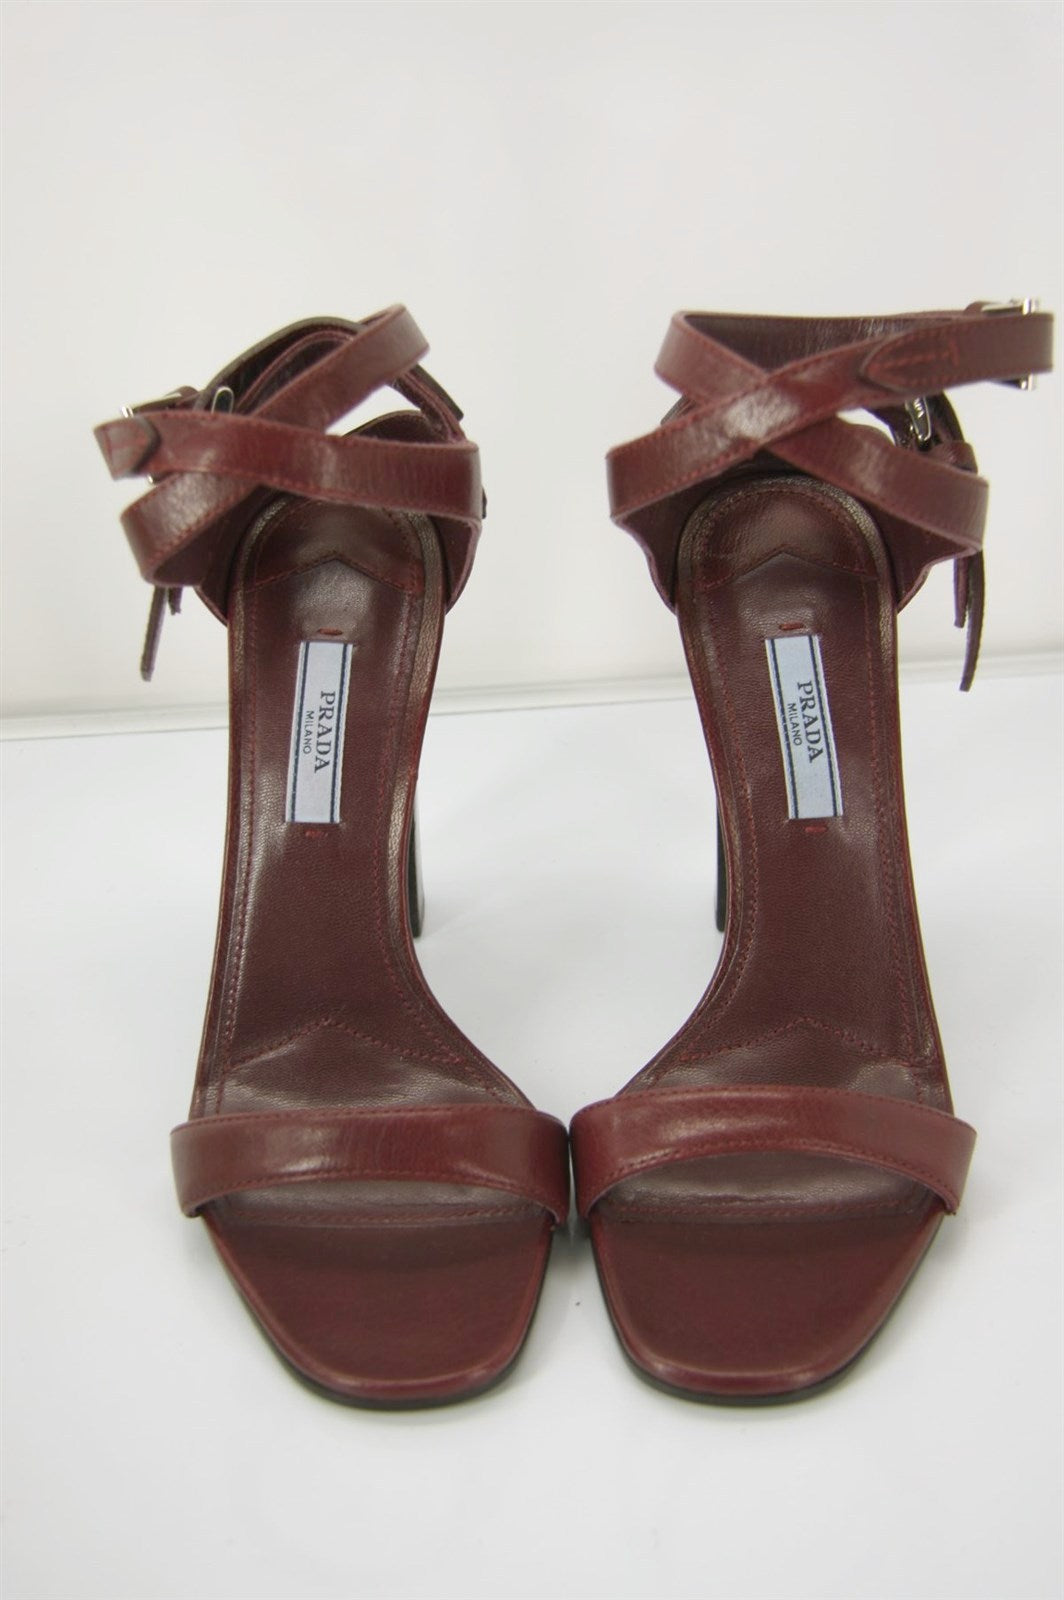 Prada Red Ganato Leather Ankle Strap High Heel Sandals Size 38.5 NIB $790 Womens